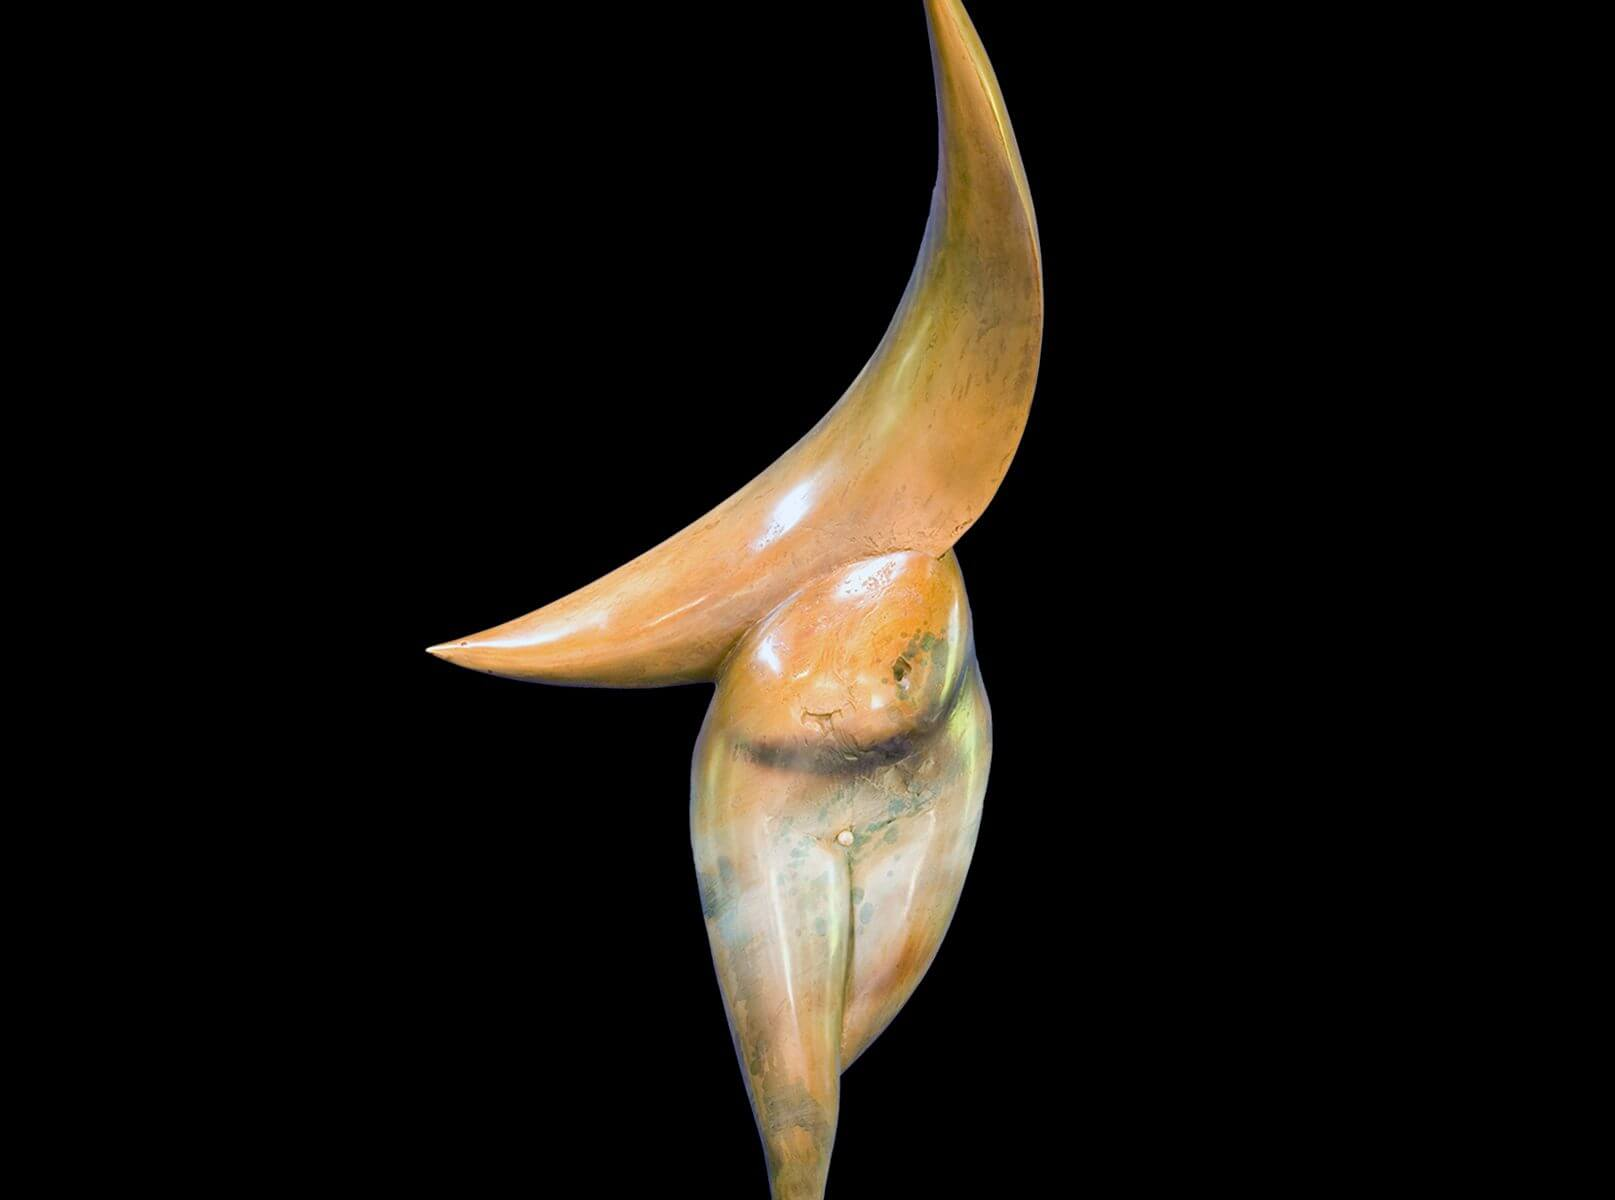 Venus et Luna a figurative abstract bronze sculpture by Andrew DeVries